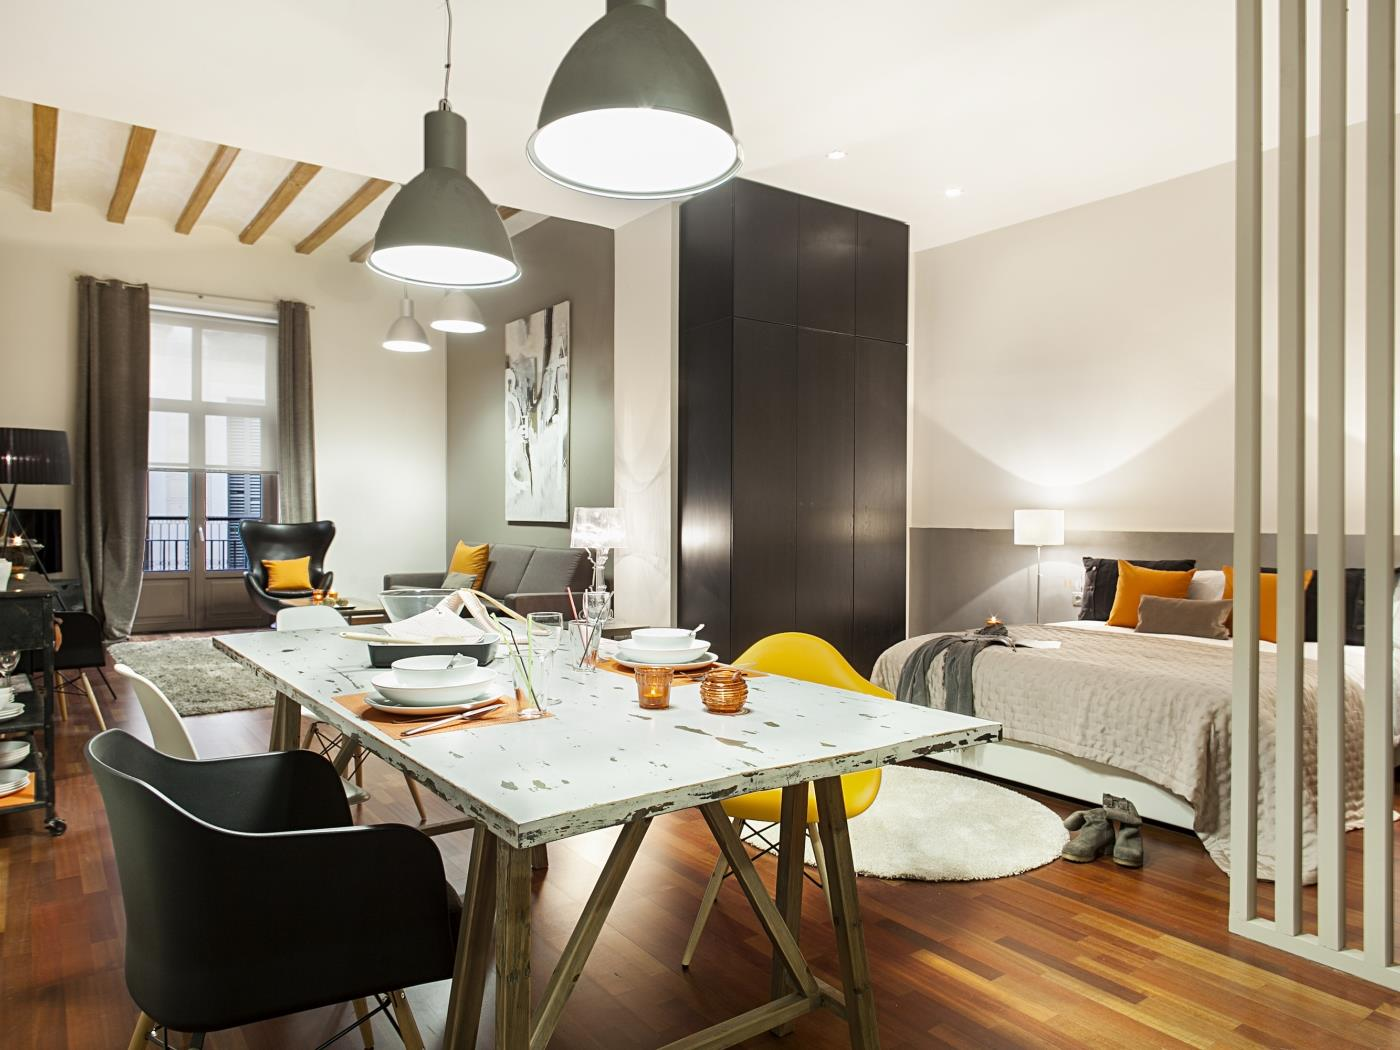 Loft right in the city centre of Barcelona in the cathedral for 4 - My Space Barcelona Apartments